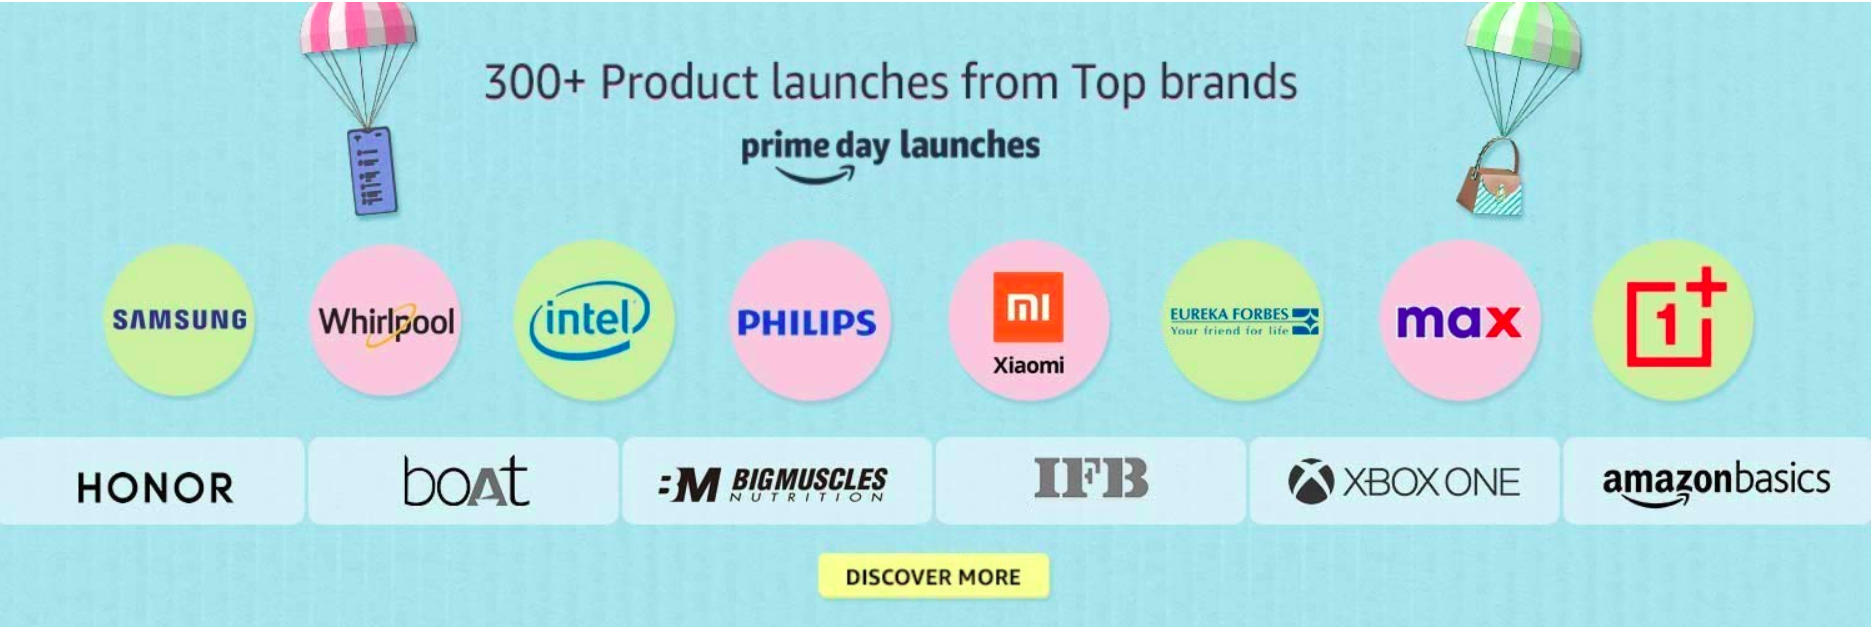 amazon prime day 2020 new launches